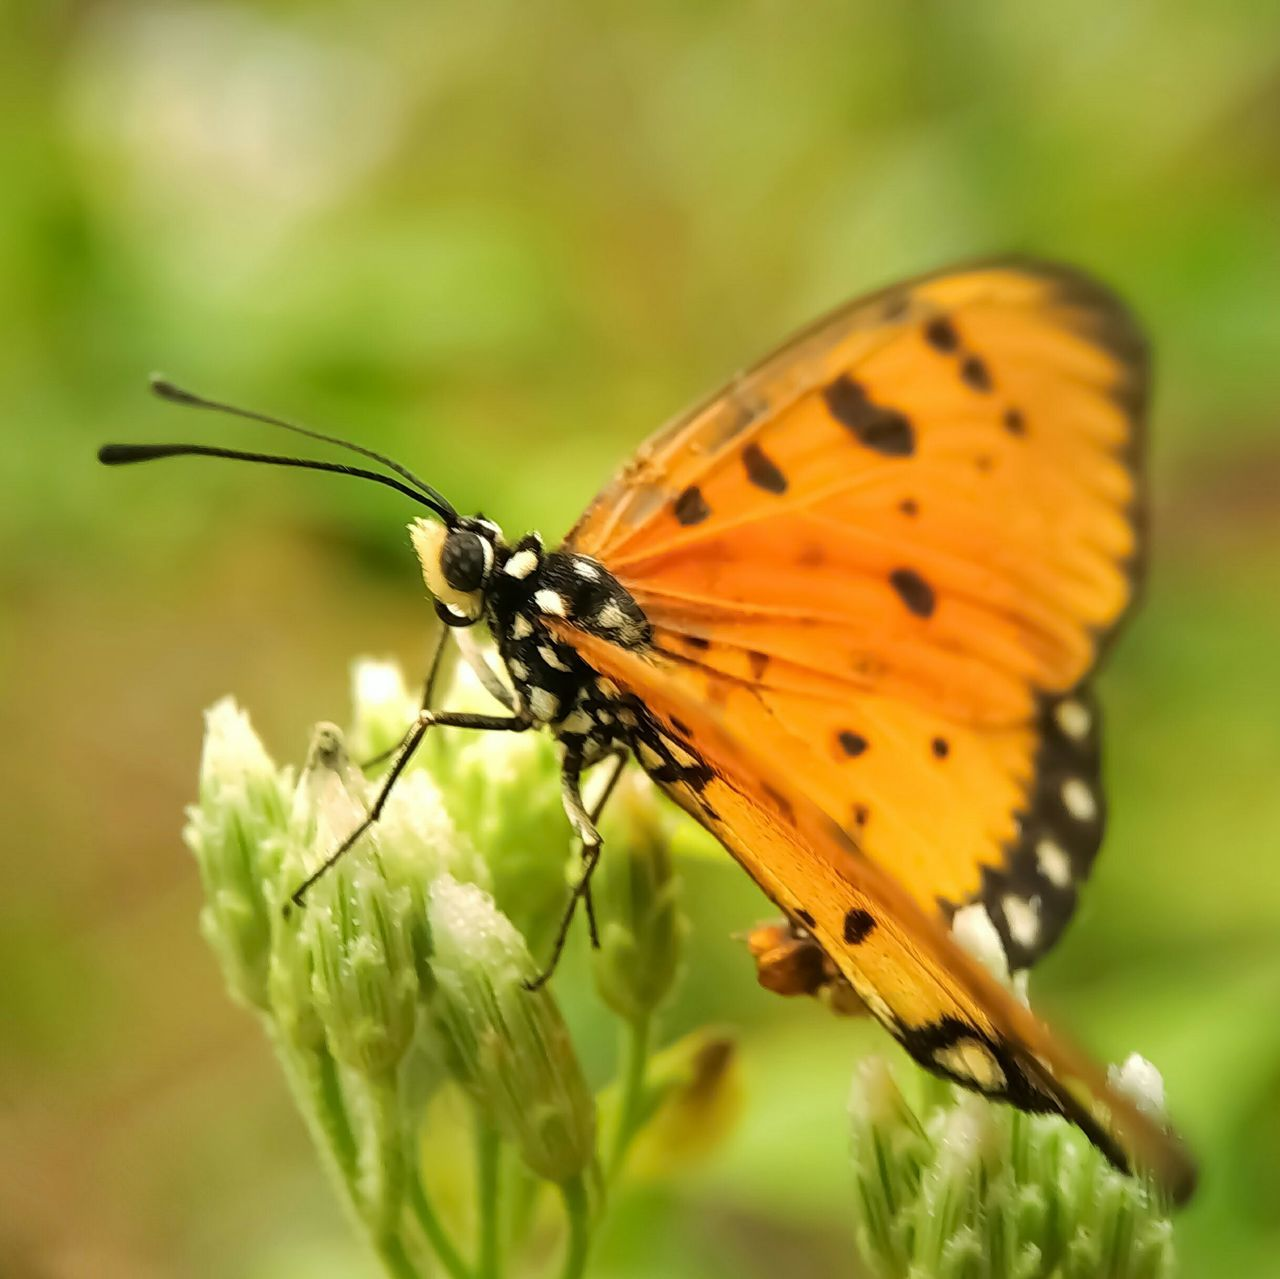 insect, animals in the wild, animal themes, one animal, no people, close-up, nature, animal wildlife, plant, leaf, outdoors, butterfly - insect, day, beauty in nature, fragility, freshness